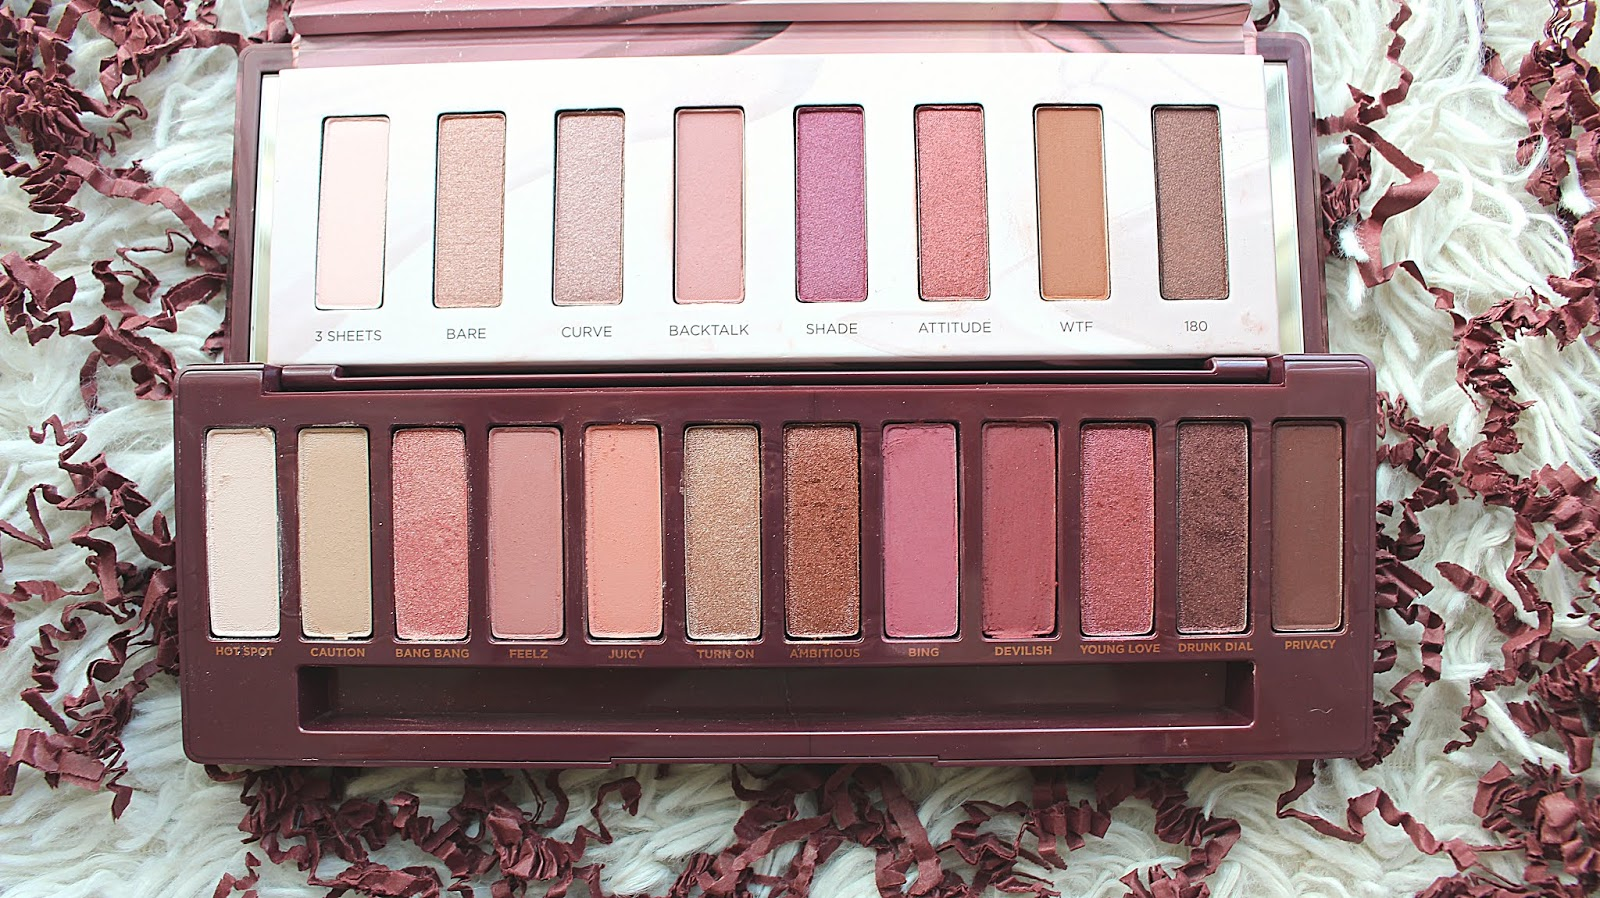 Naked 1 Urban Decay Palette